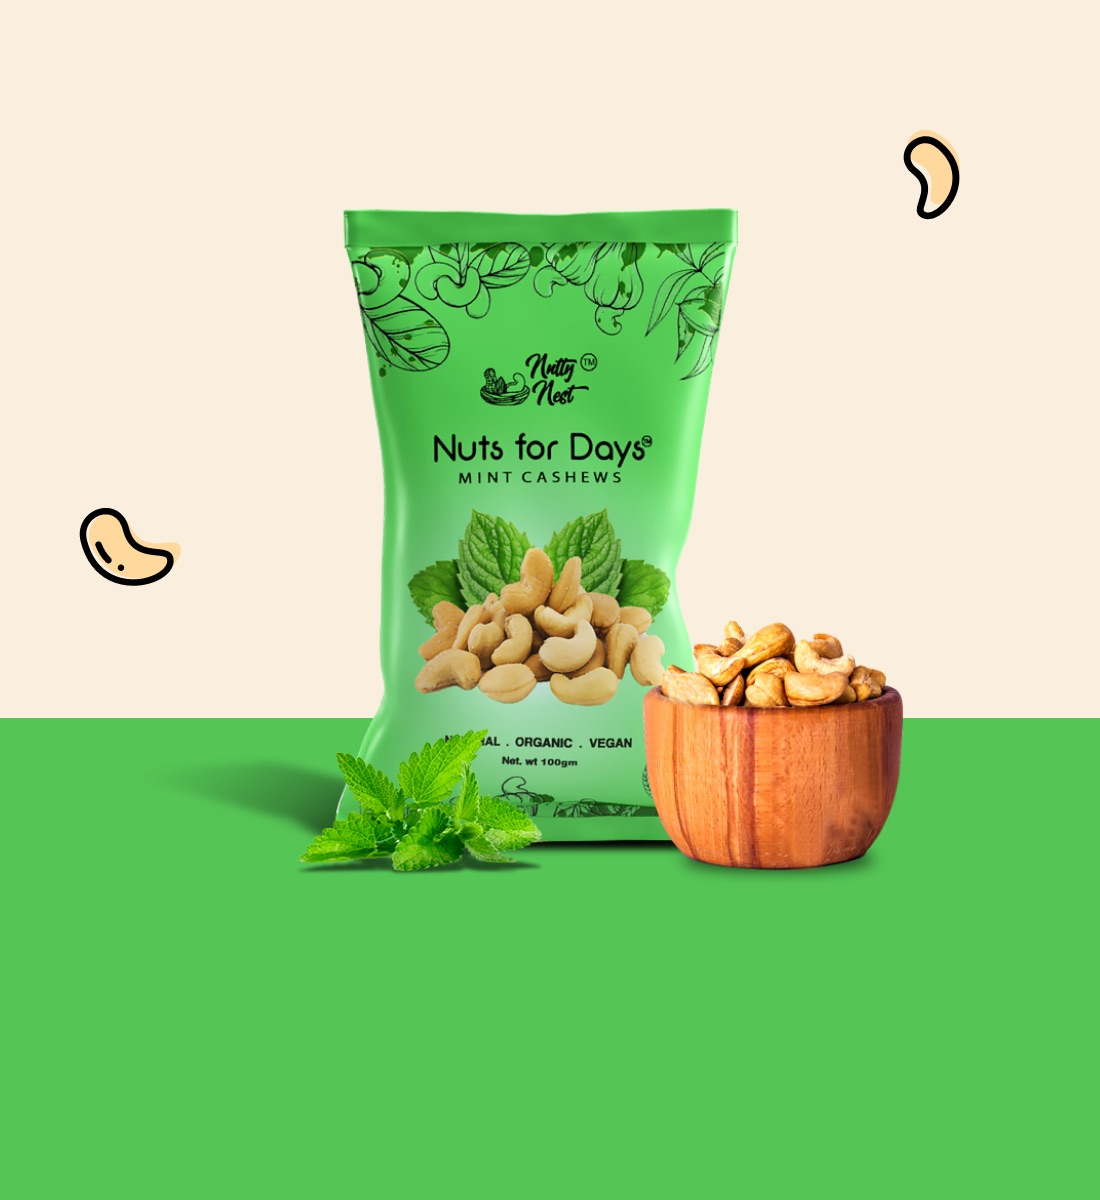 MINT CASHEWS